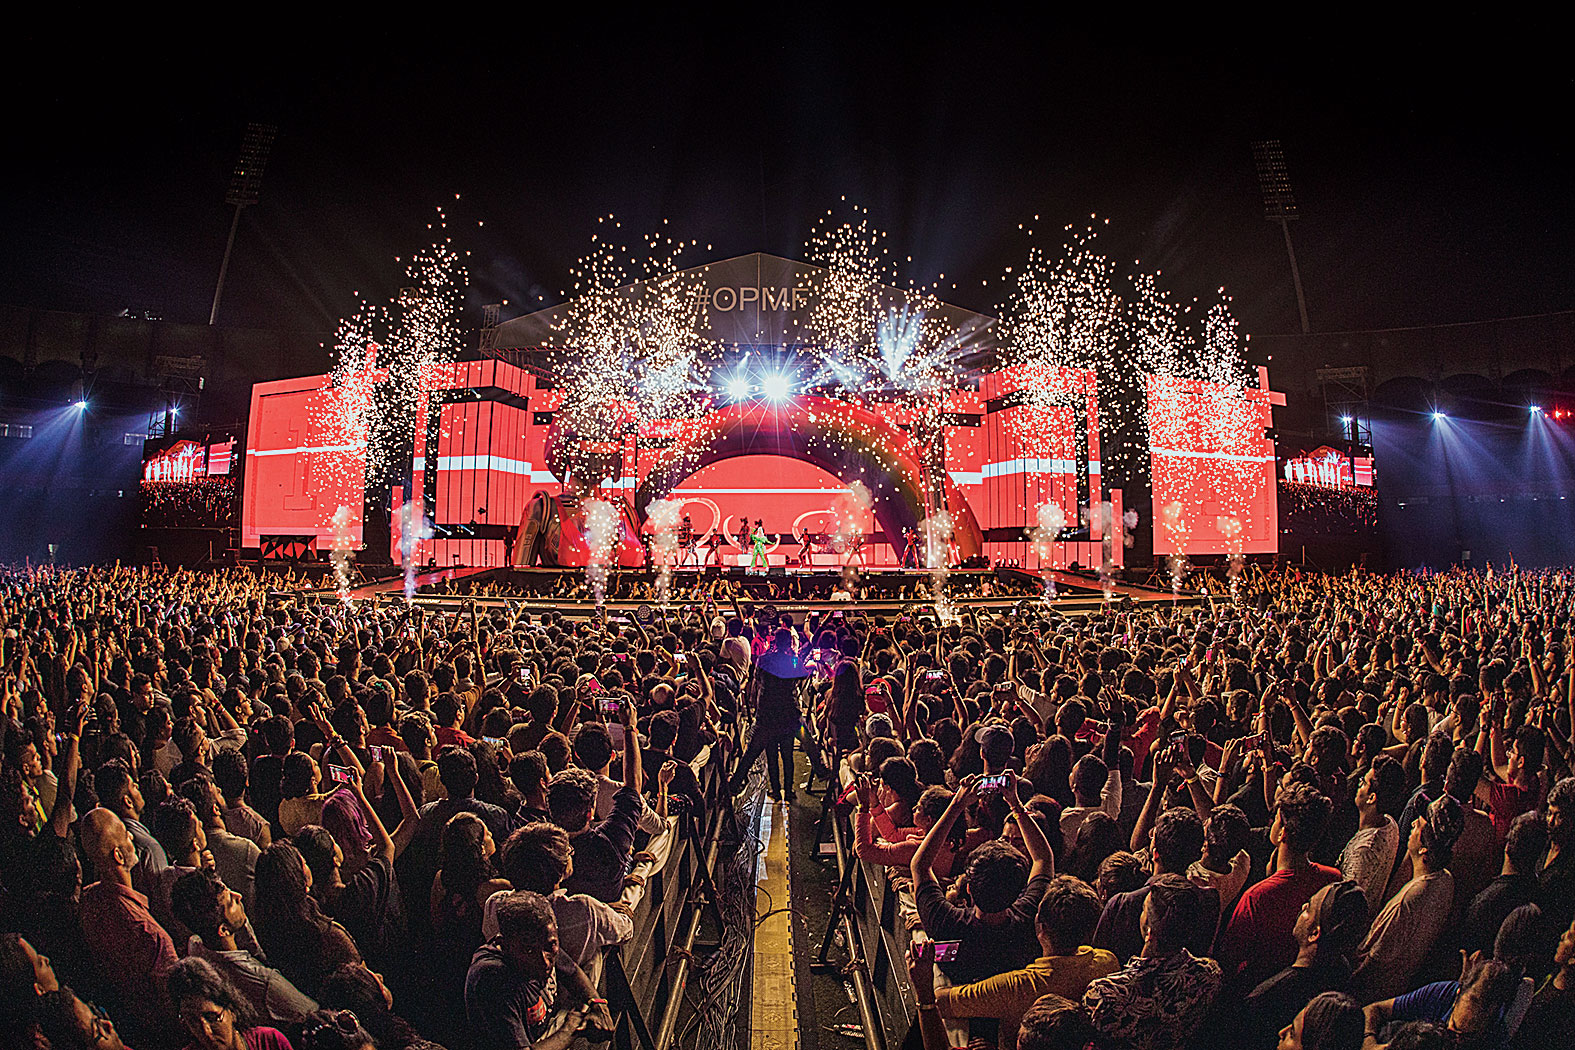 DY Patil Stadium buzzed as a whopping 25,000 fans on the ground sang out loud Katy Perry's last song of the night as fireworks lit up the Mumbai sky.